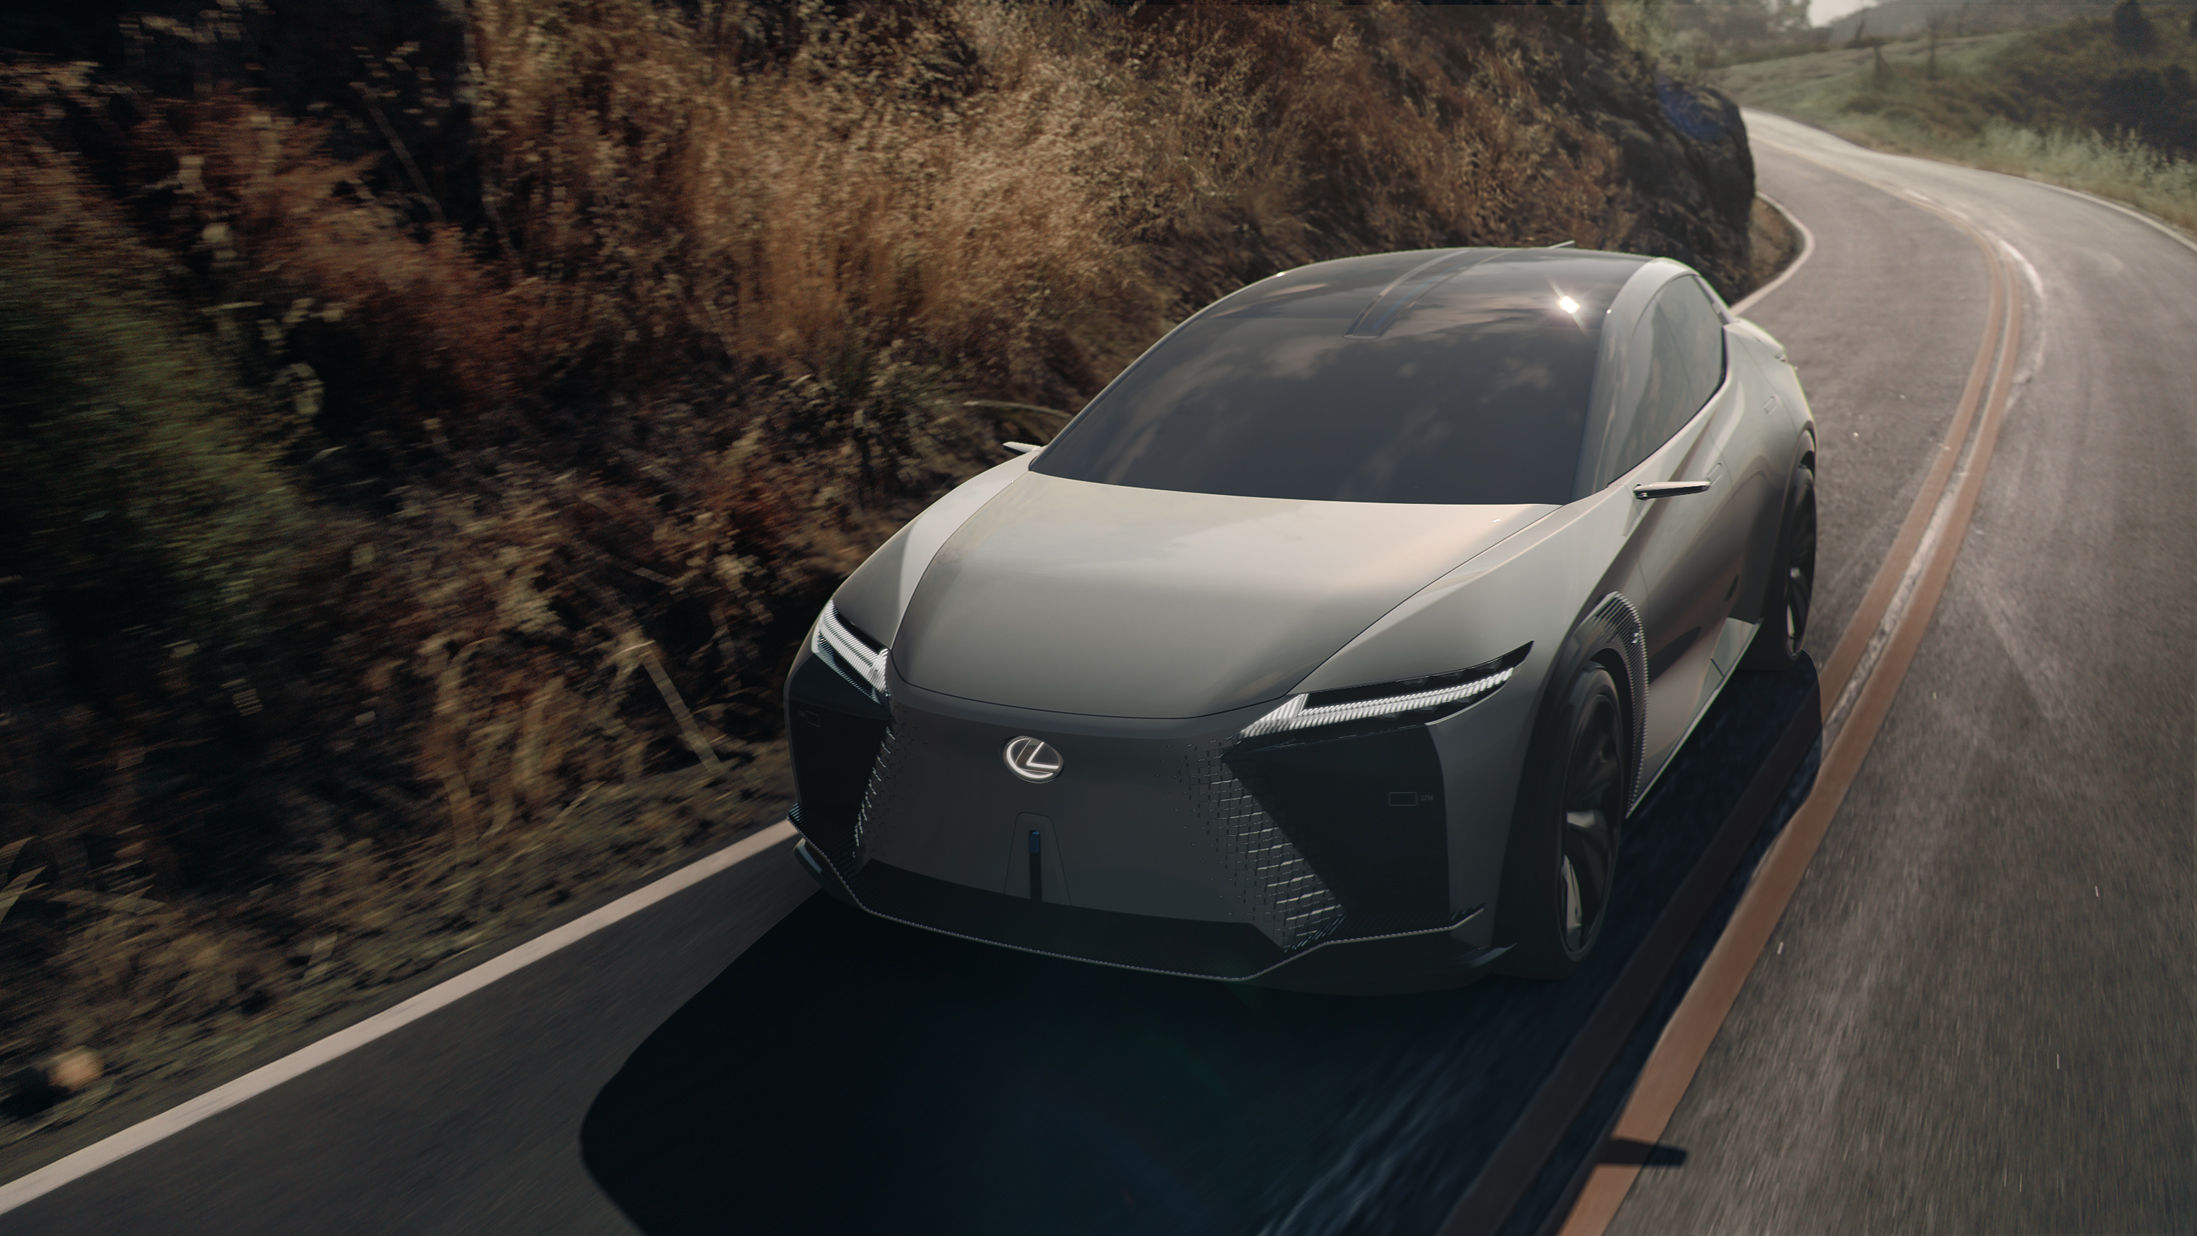 The Prius-like front profile of the Lexus LF-Z Electrified concept may not appeal to some